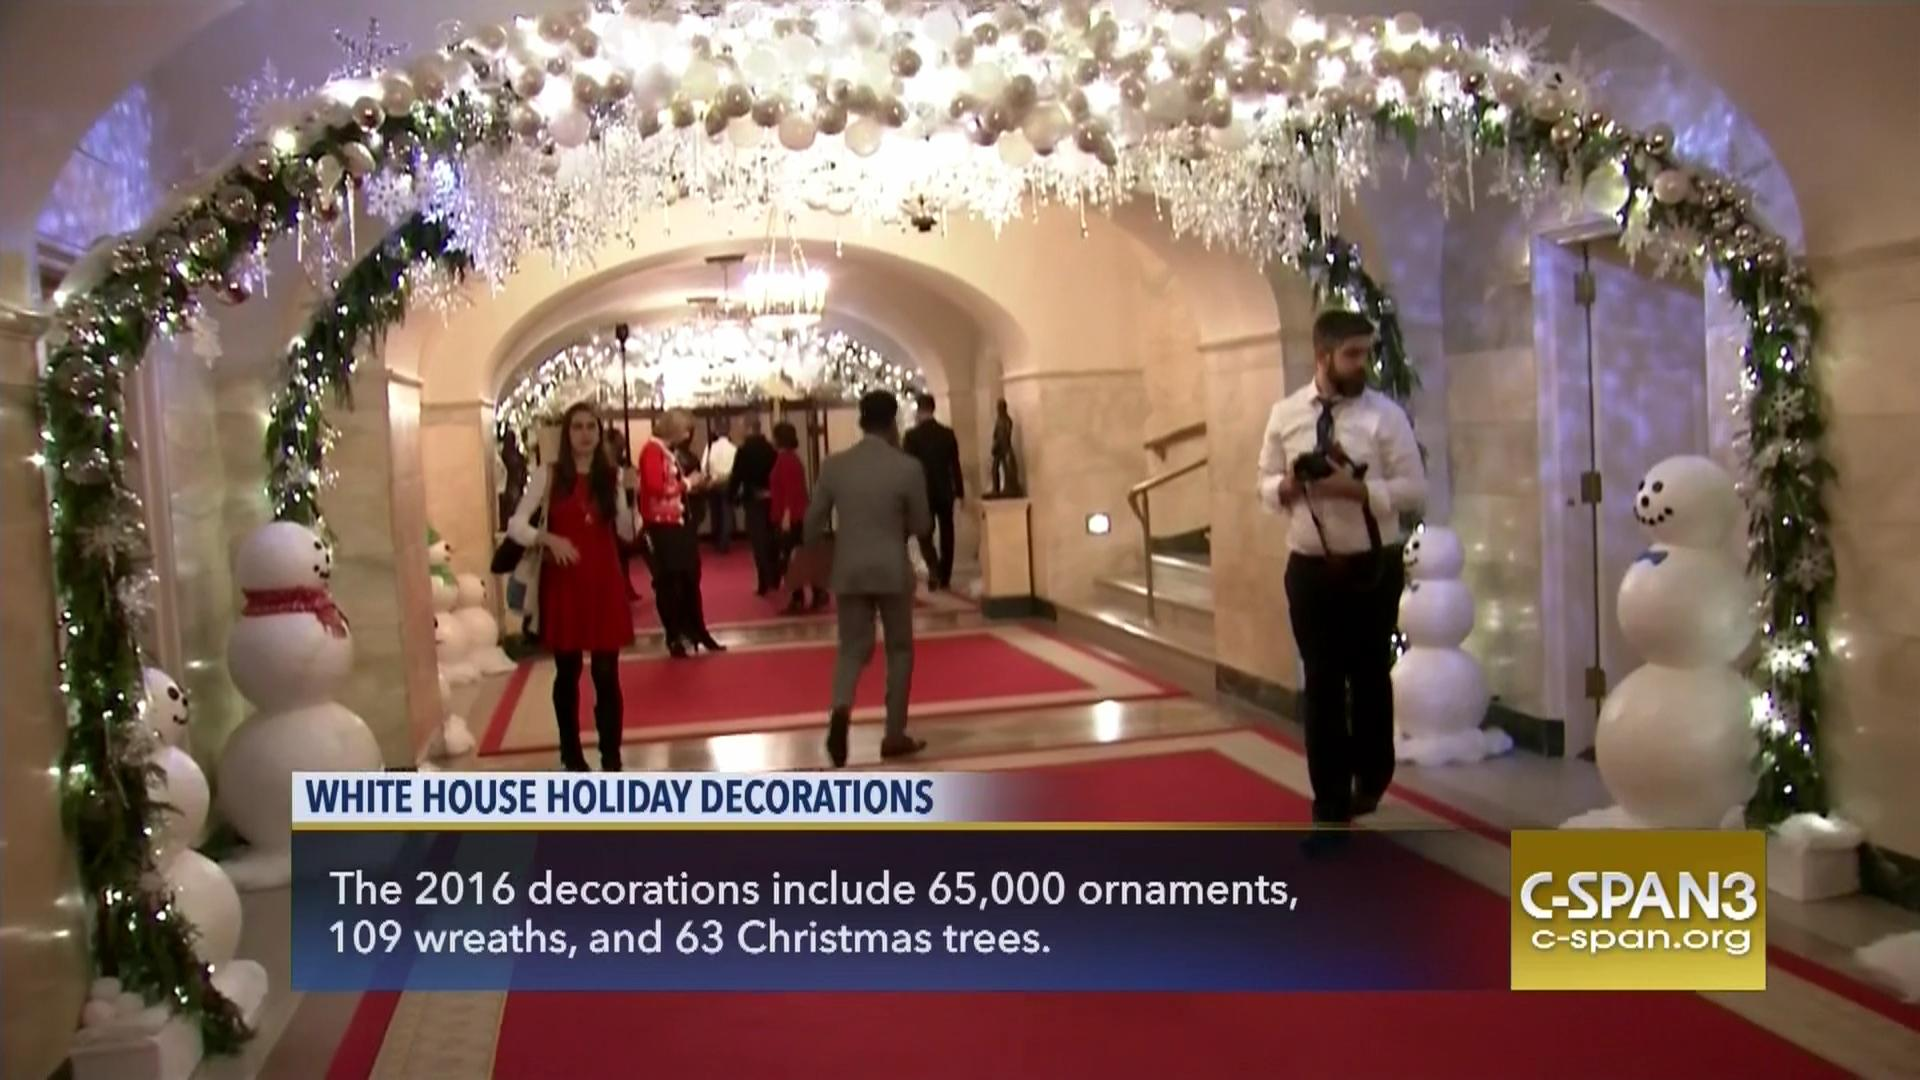 white house 2016 holiday decorations preview nov 29 2016 video c spanorg